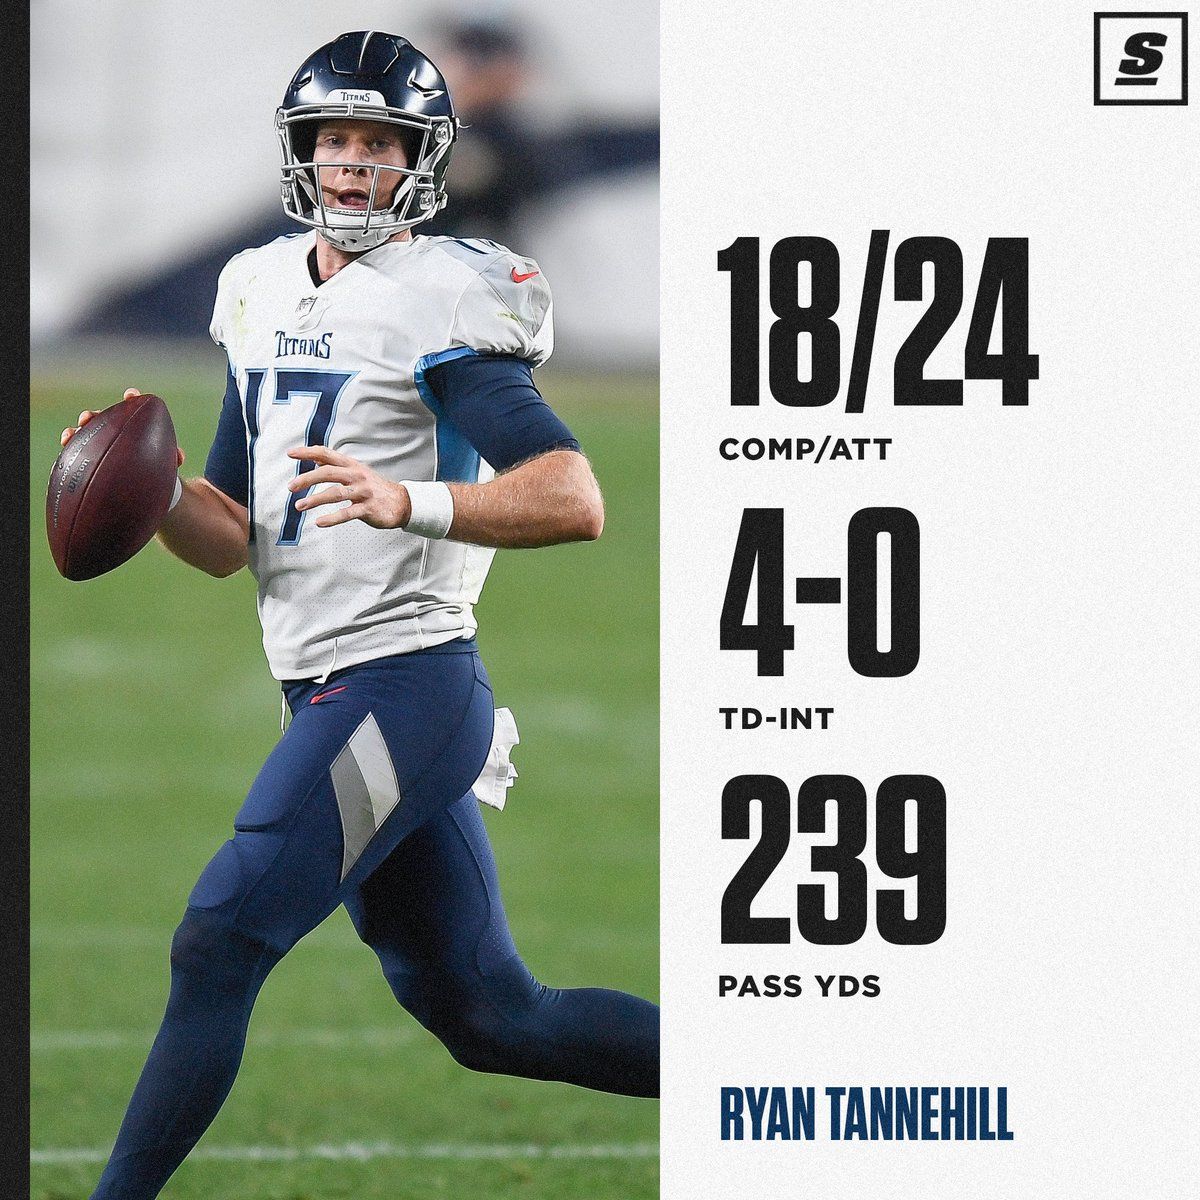 @theScore's photo on Tannehill